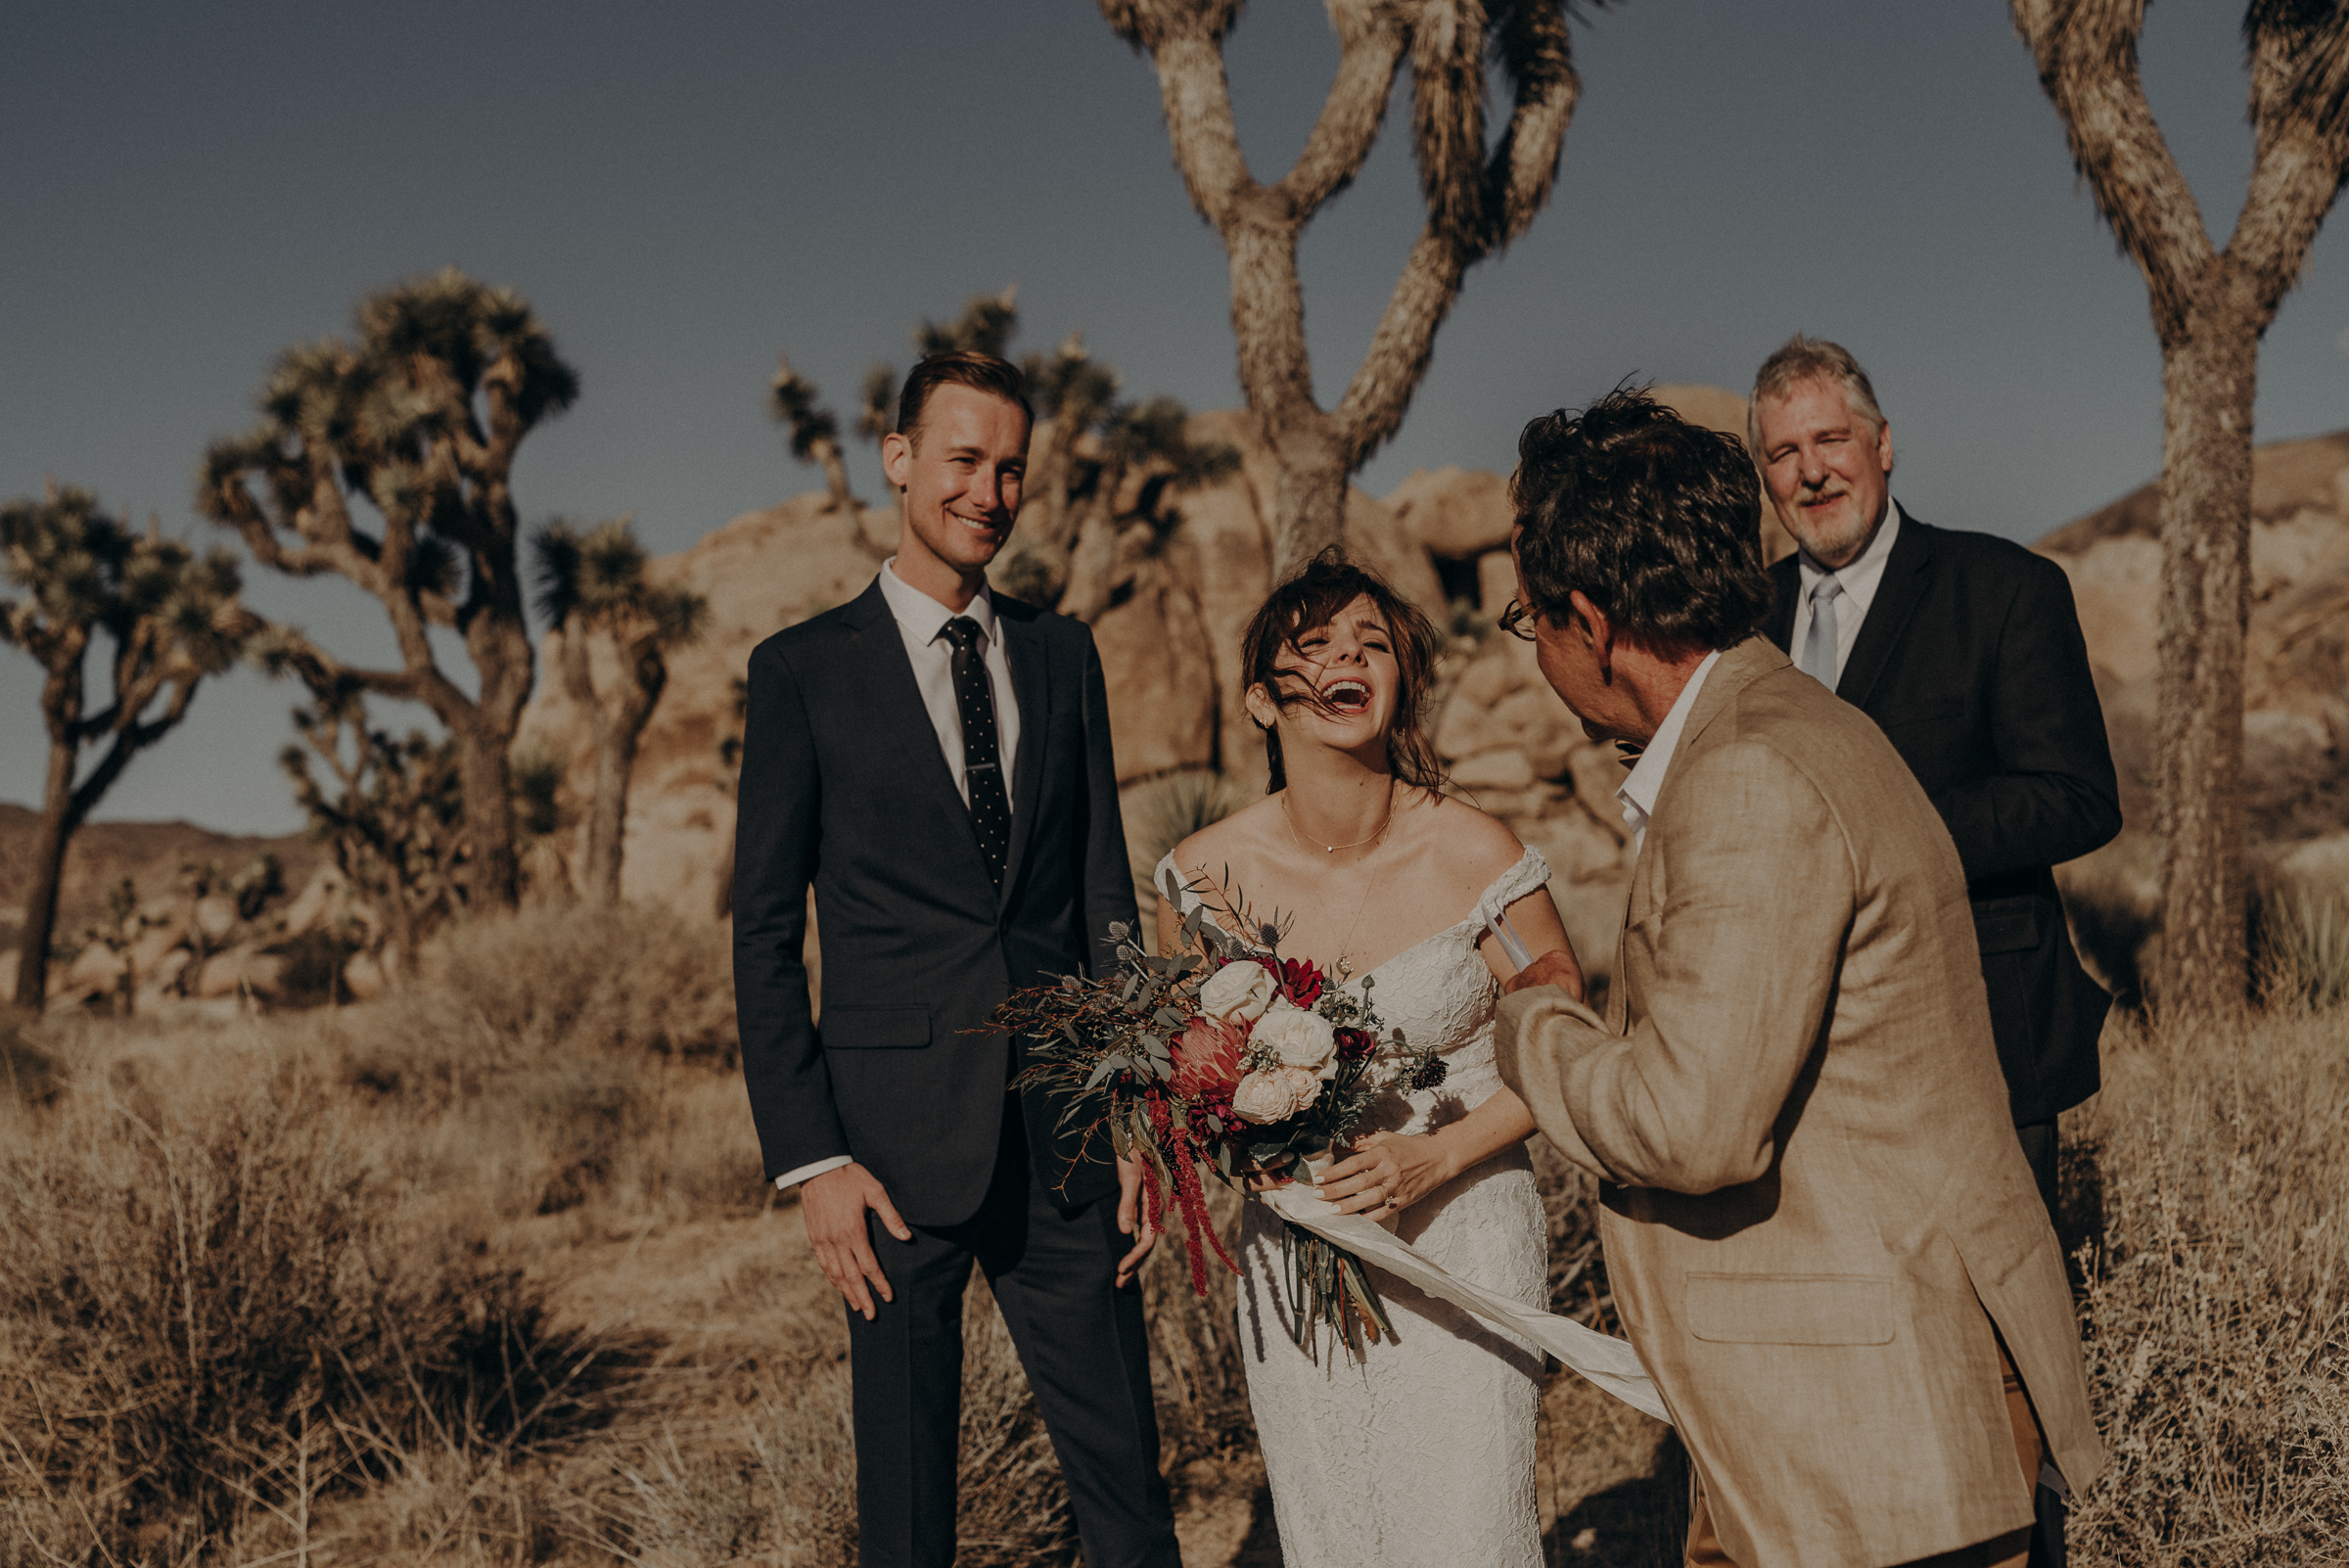 Joshua Tree Elopement - Los Angeles Wedding Photographers - IsaiahAndTaylor.com-027.jpg